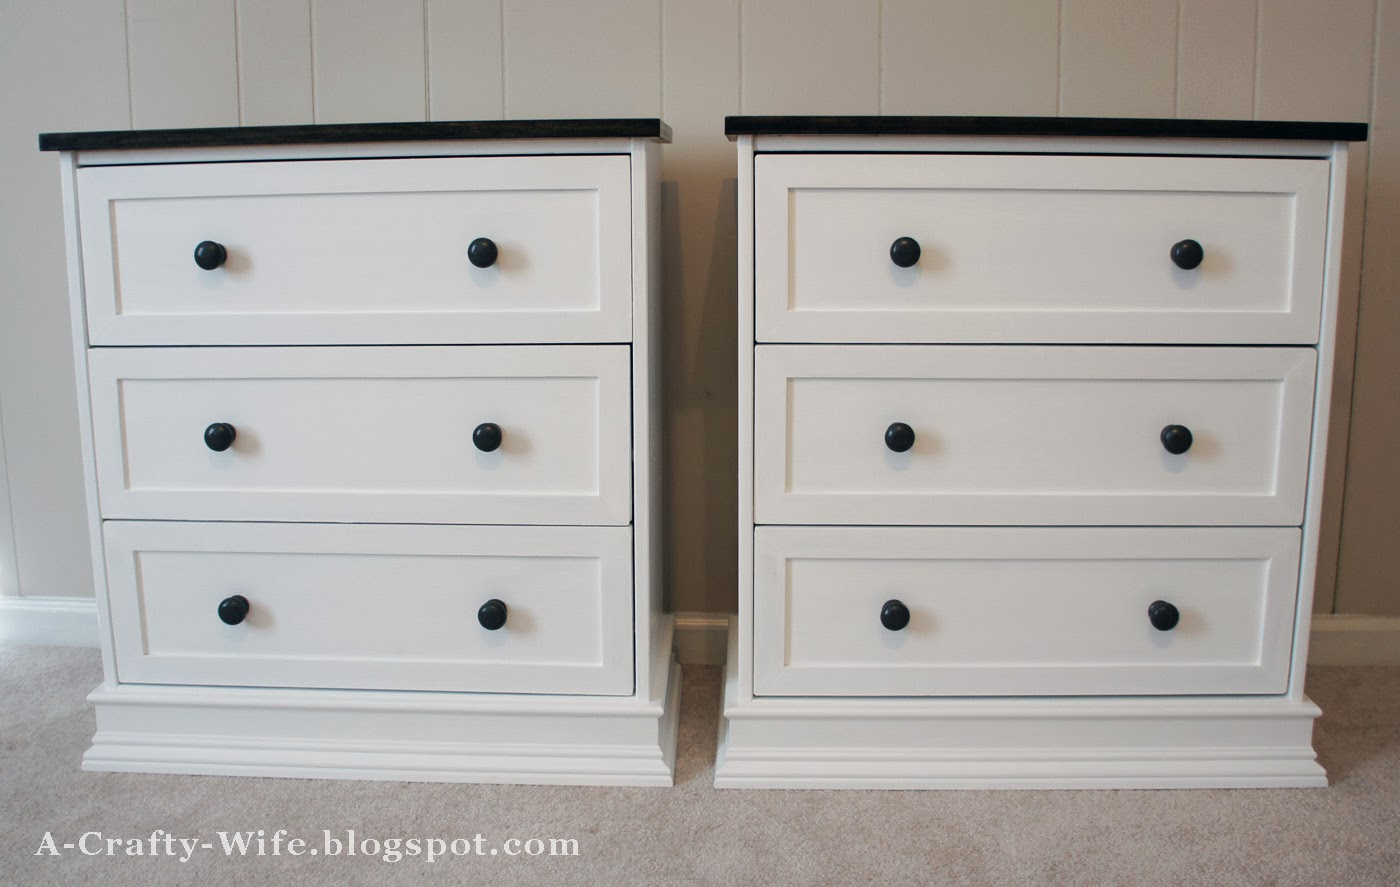 Ikea Rast hack for bedside tables - finished shot | A Crafty Wife